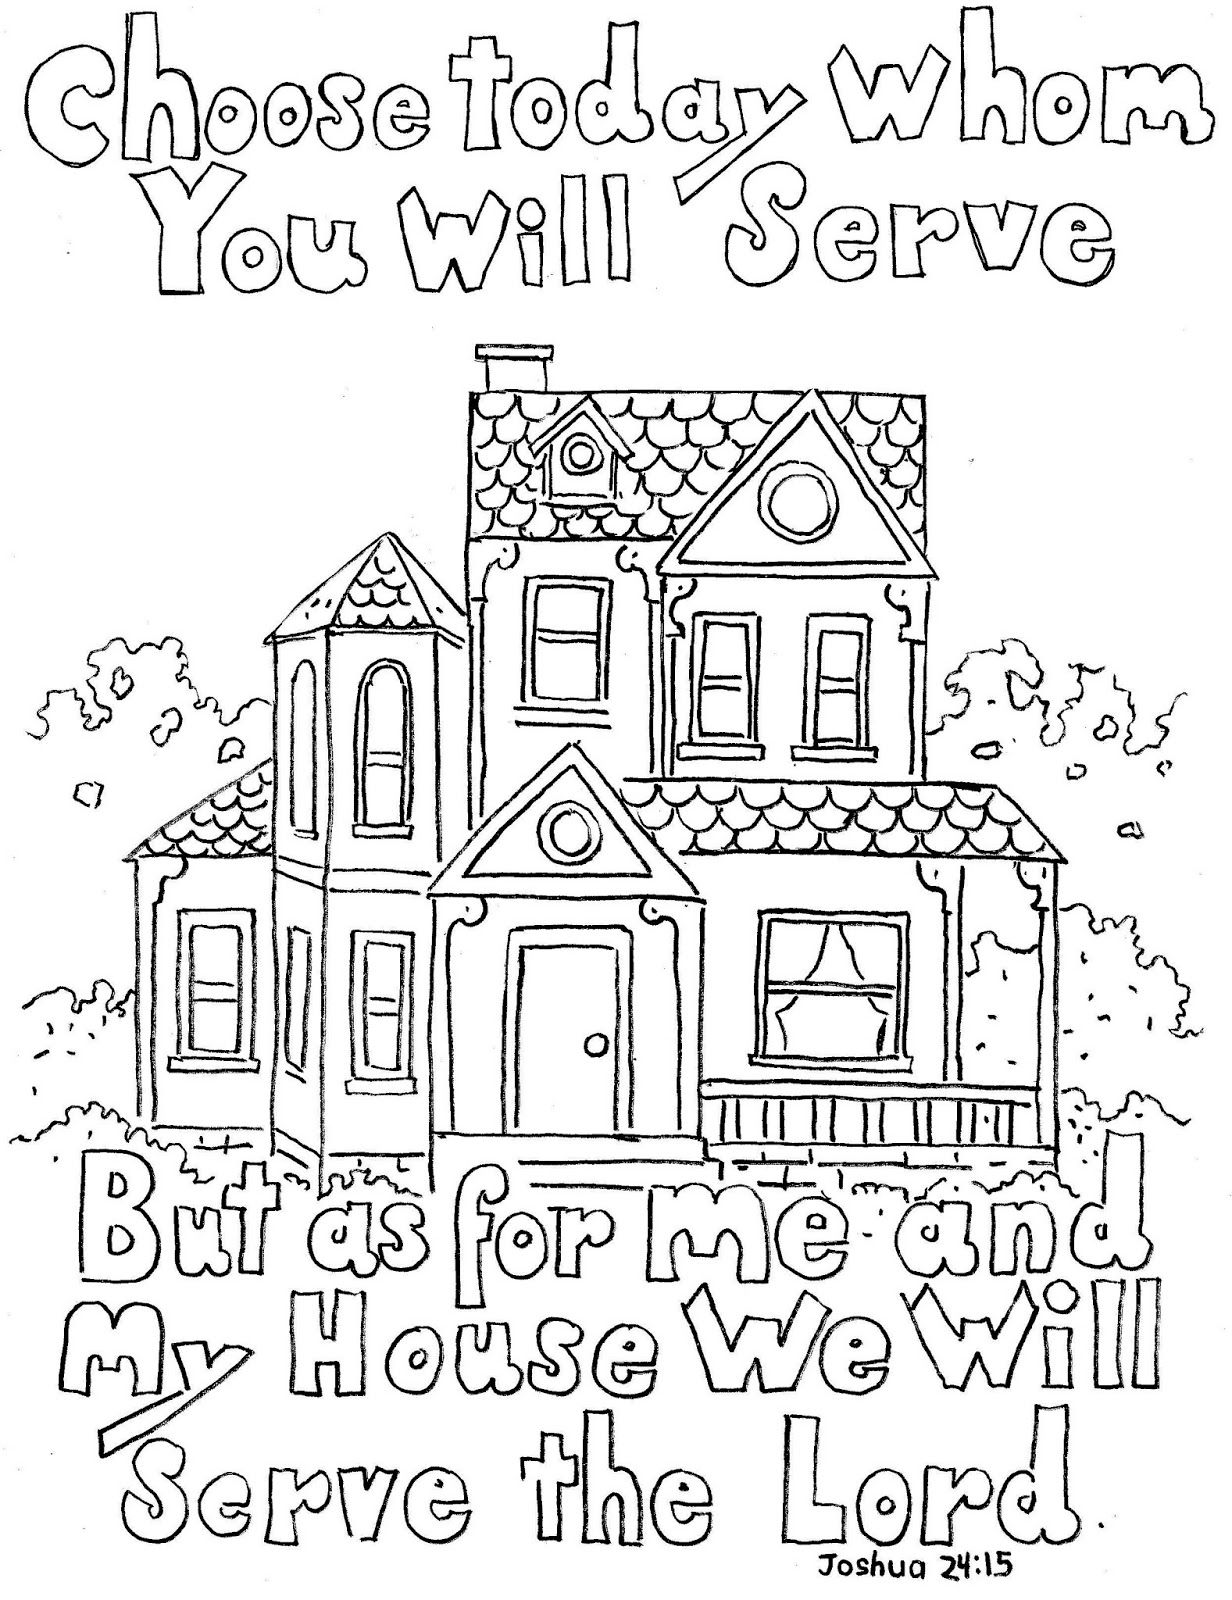 This is an image of Selective Bible Verse Coloring Pages For Kids